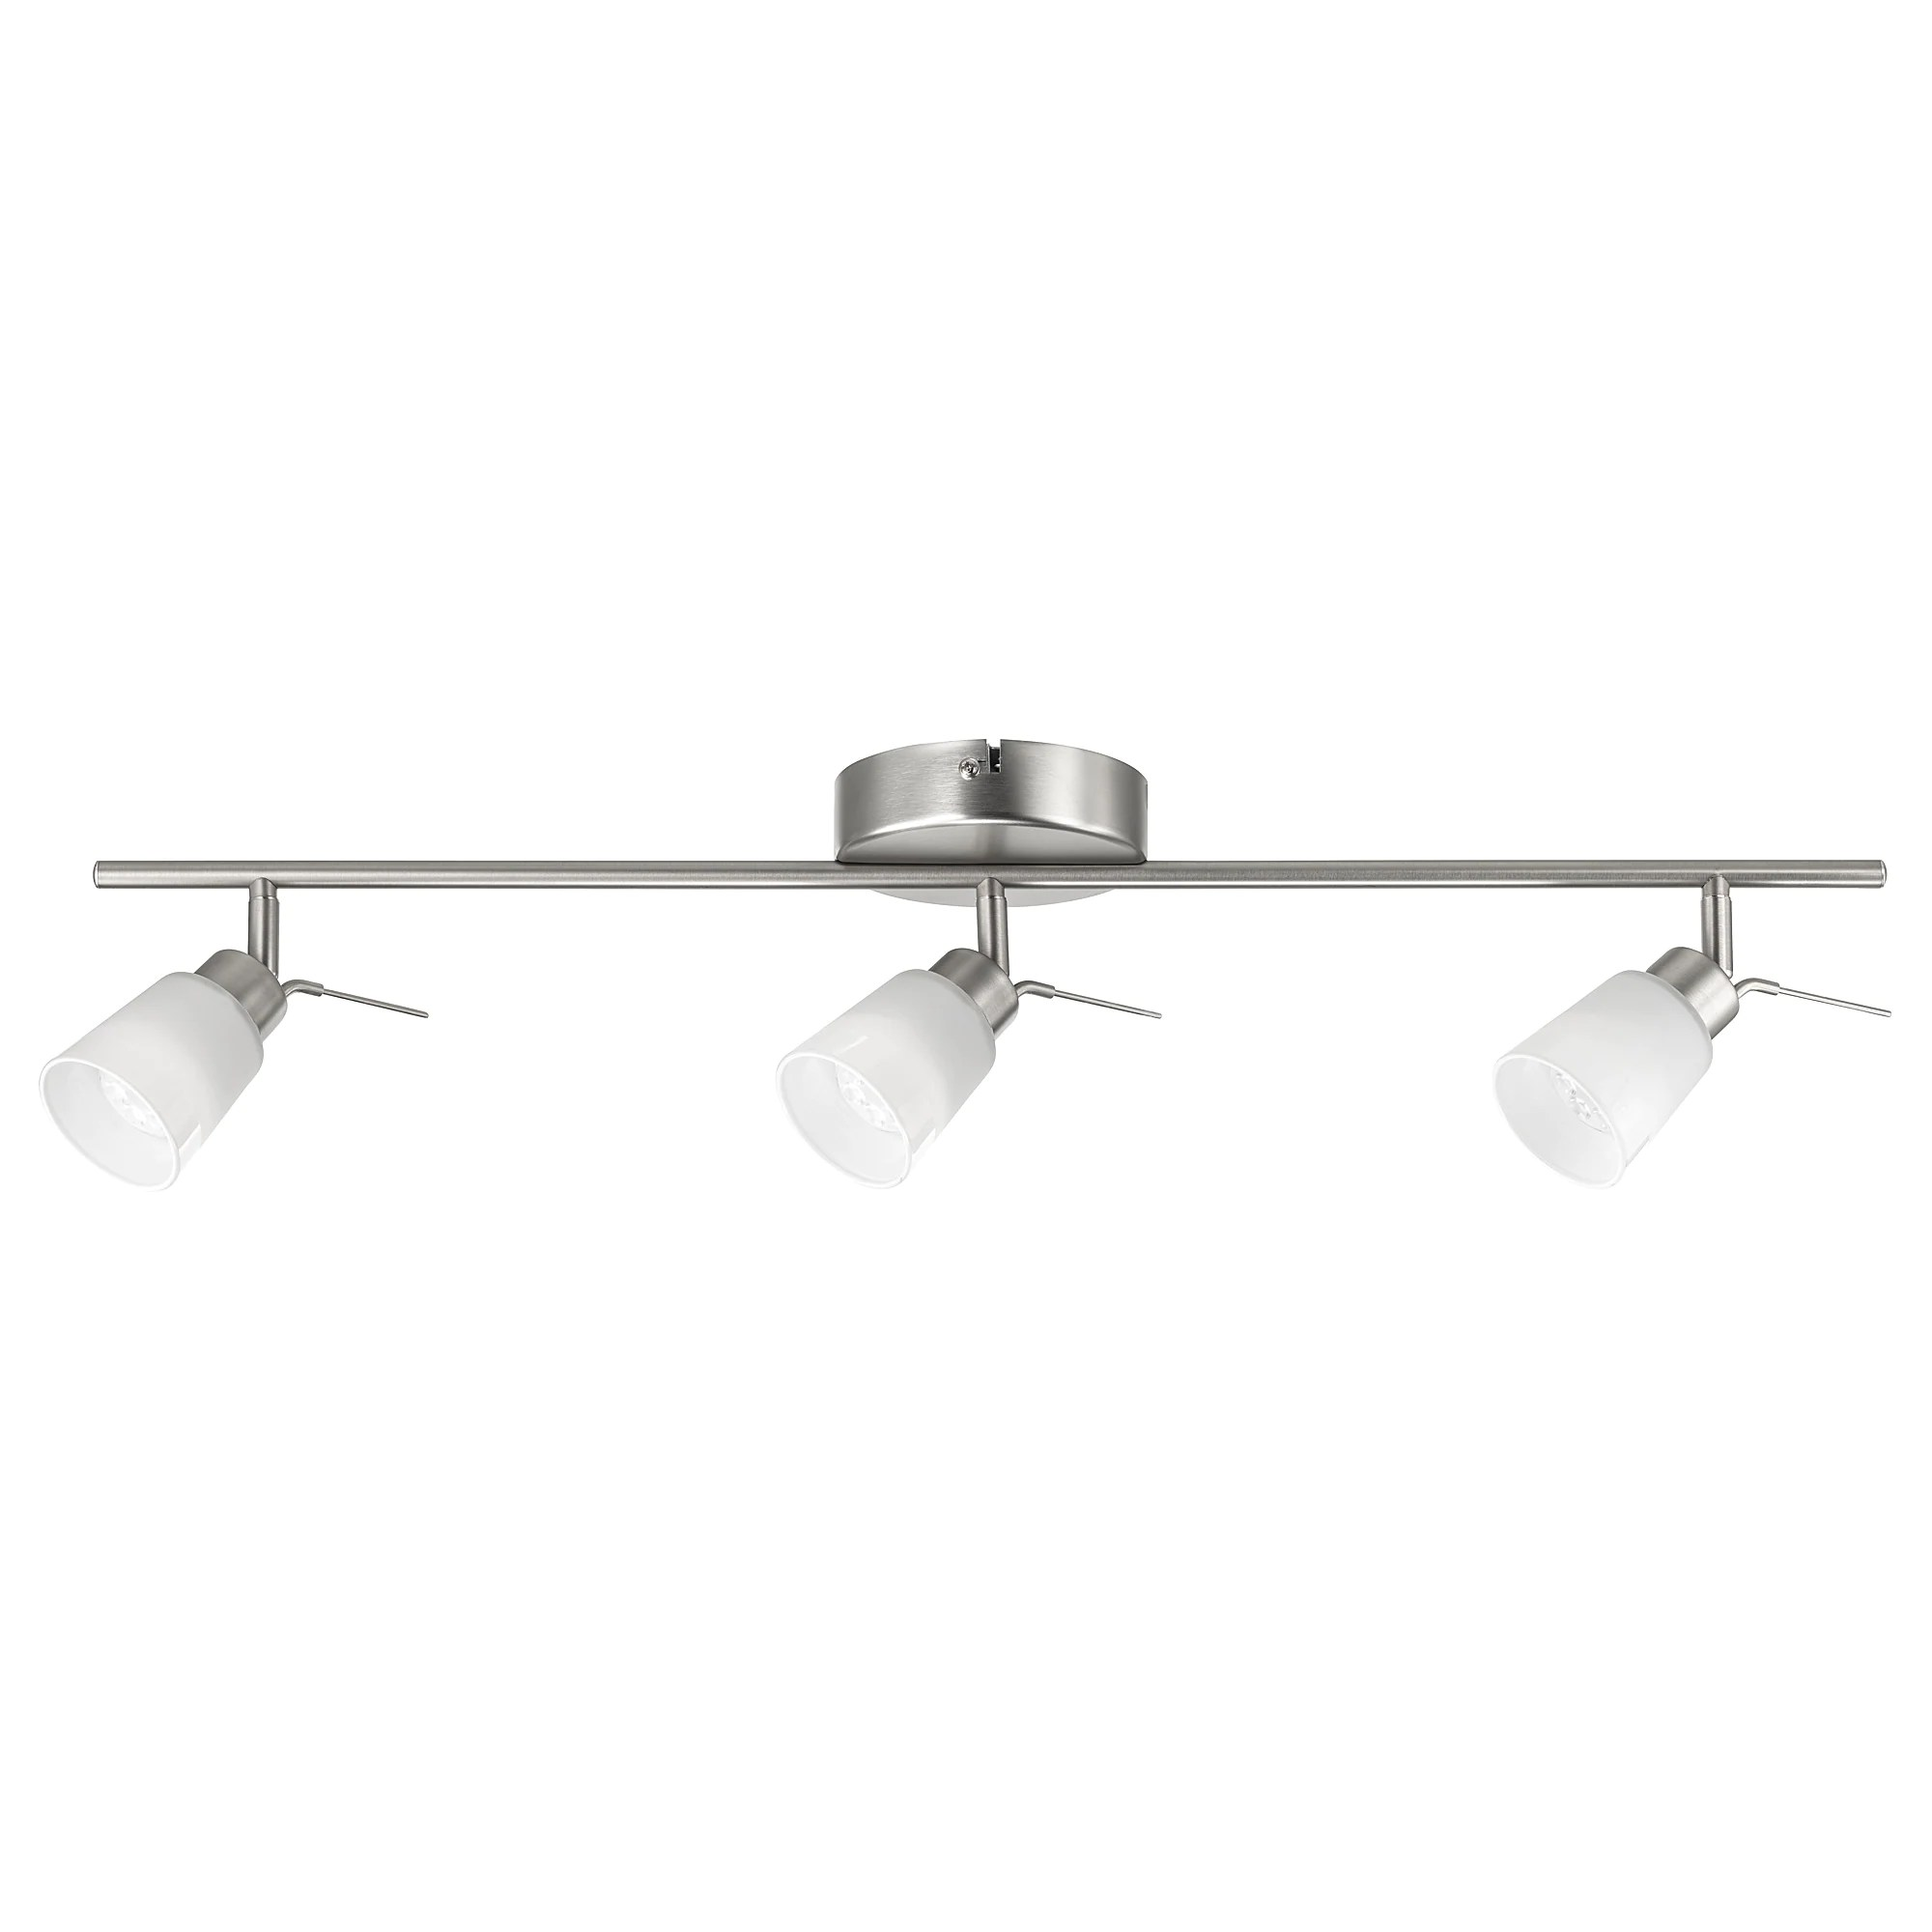 Led Hanglamp Ikea Basisk Ceiling Track 3 Spotlights Nickel Plated White